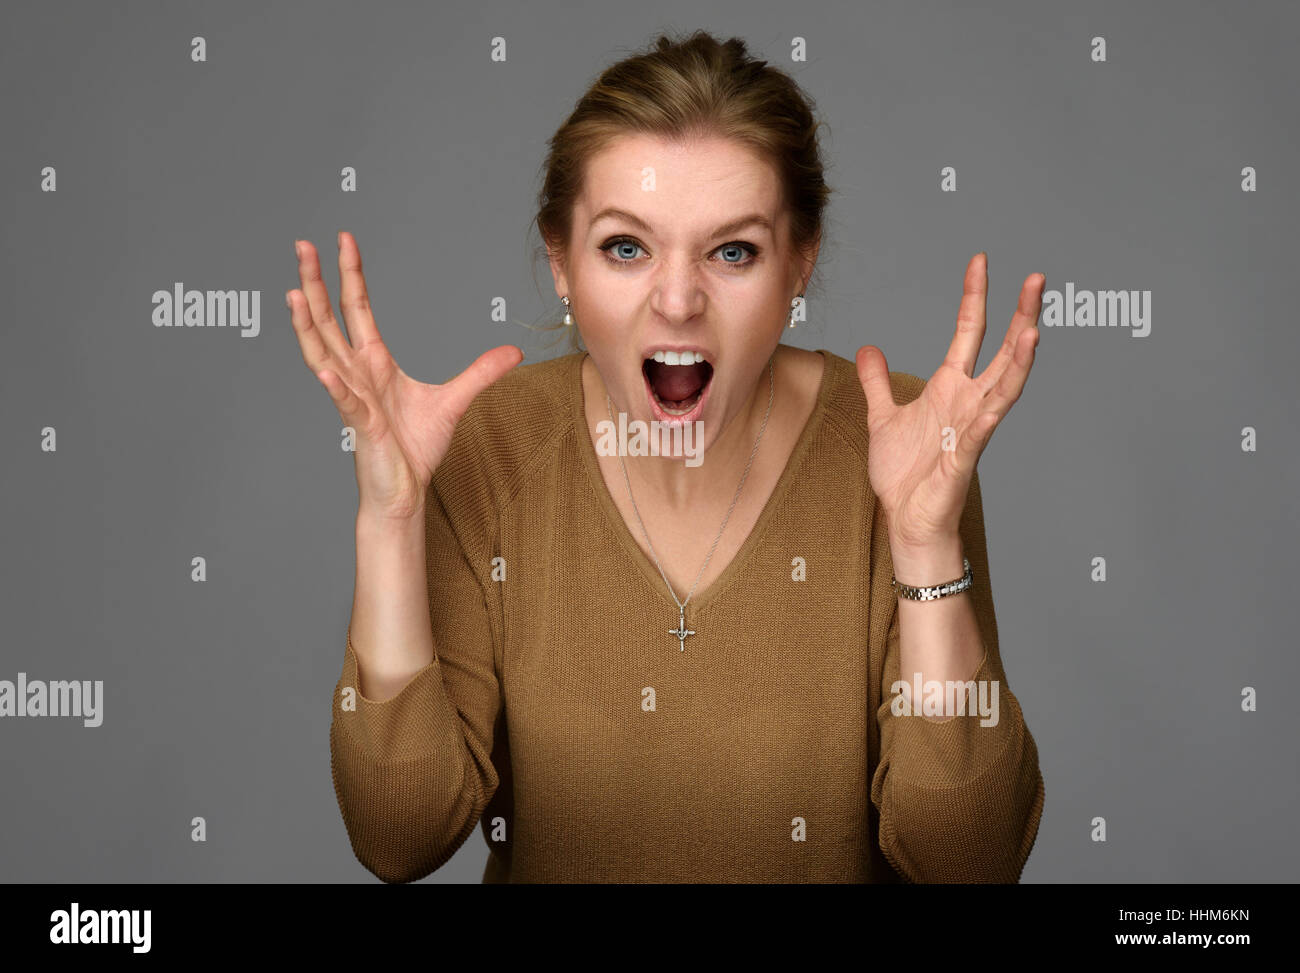 portrait of an angry woman over gray background - Stock Image